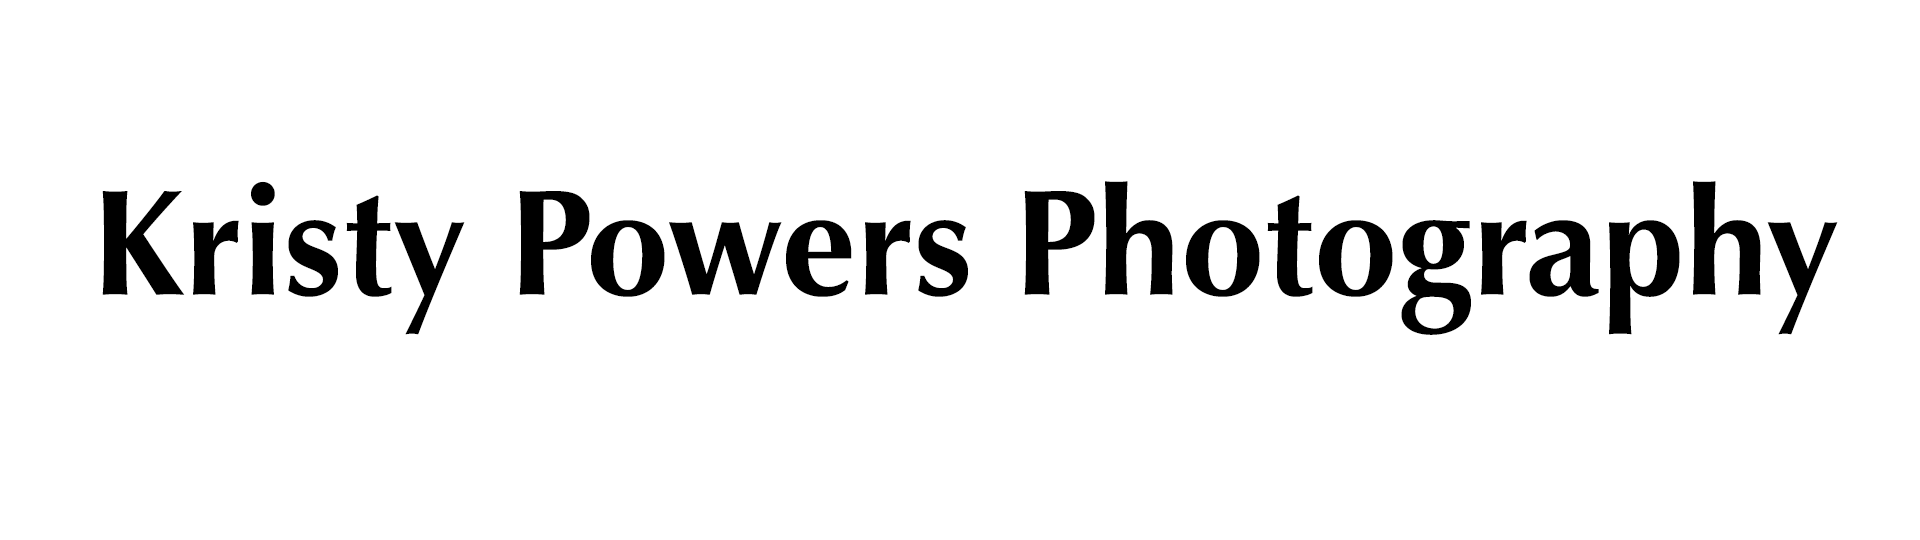 Kristy-Powers-2(1).png